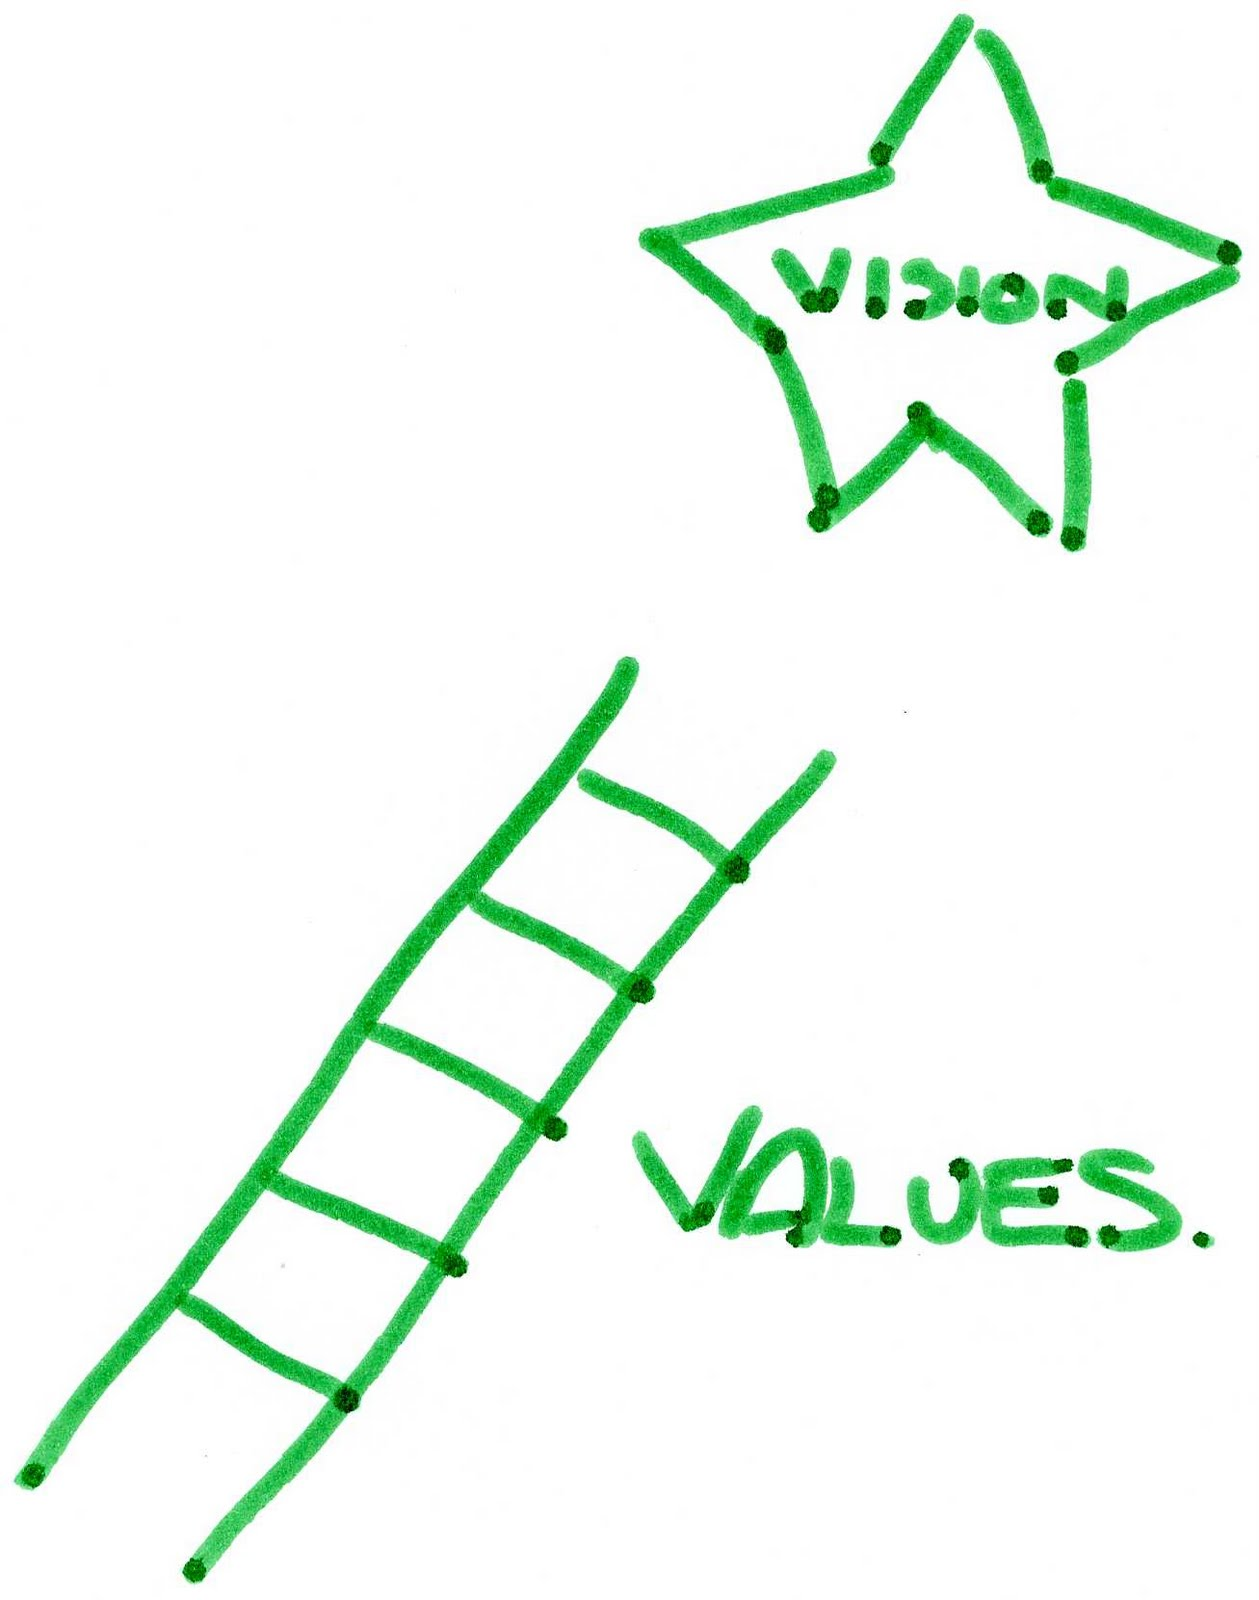 values everything and anything. we are and will be. is based on our values.